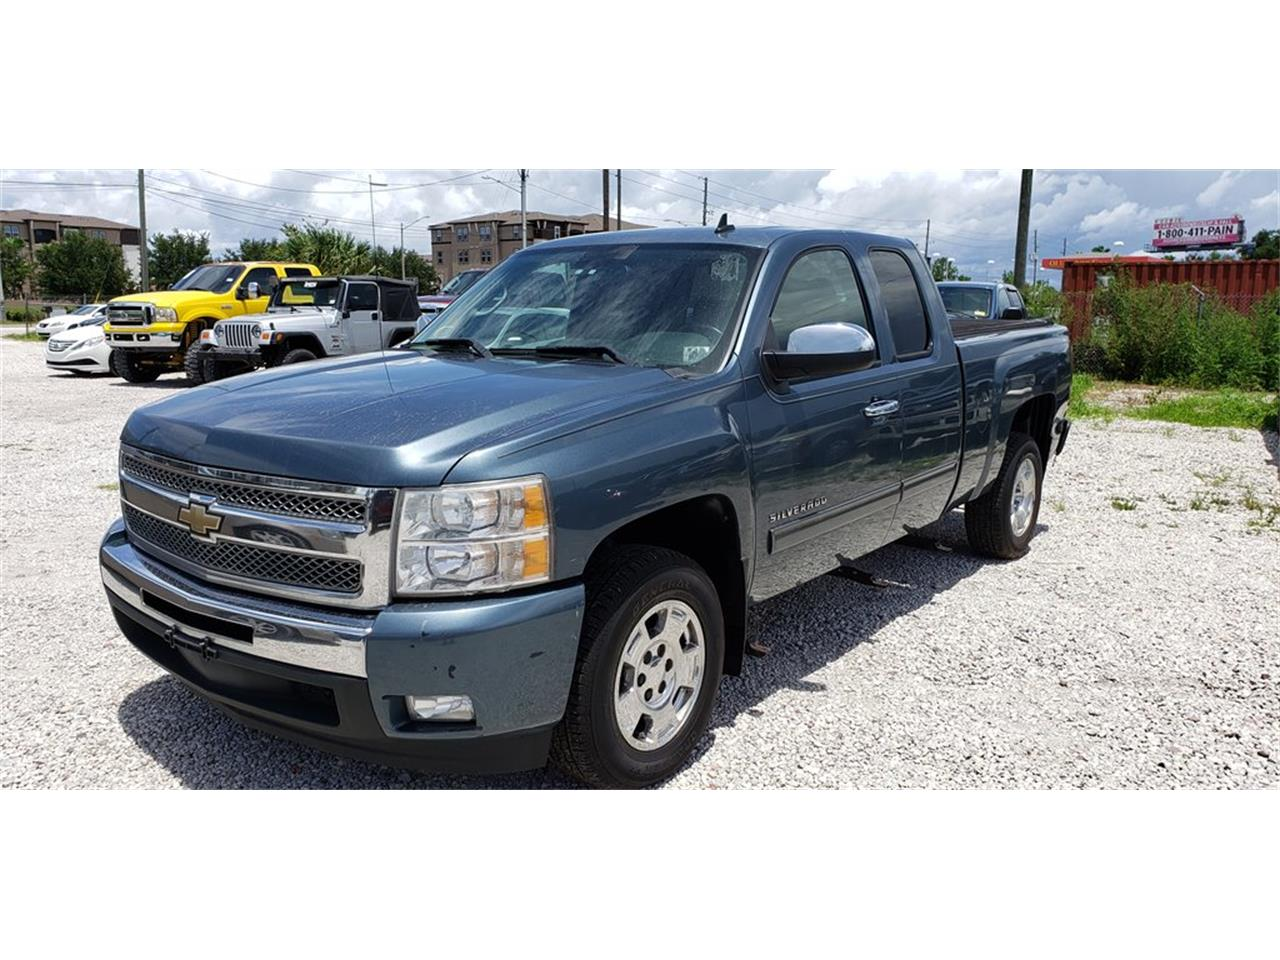 2011 Chevrolet Silverado for sale in Orlando, FL